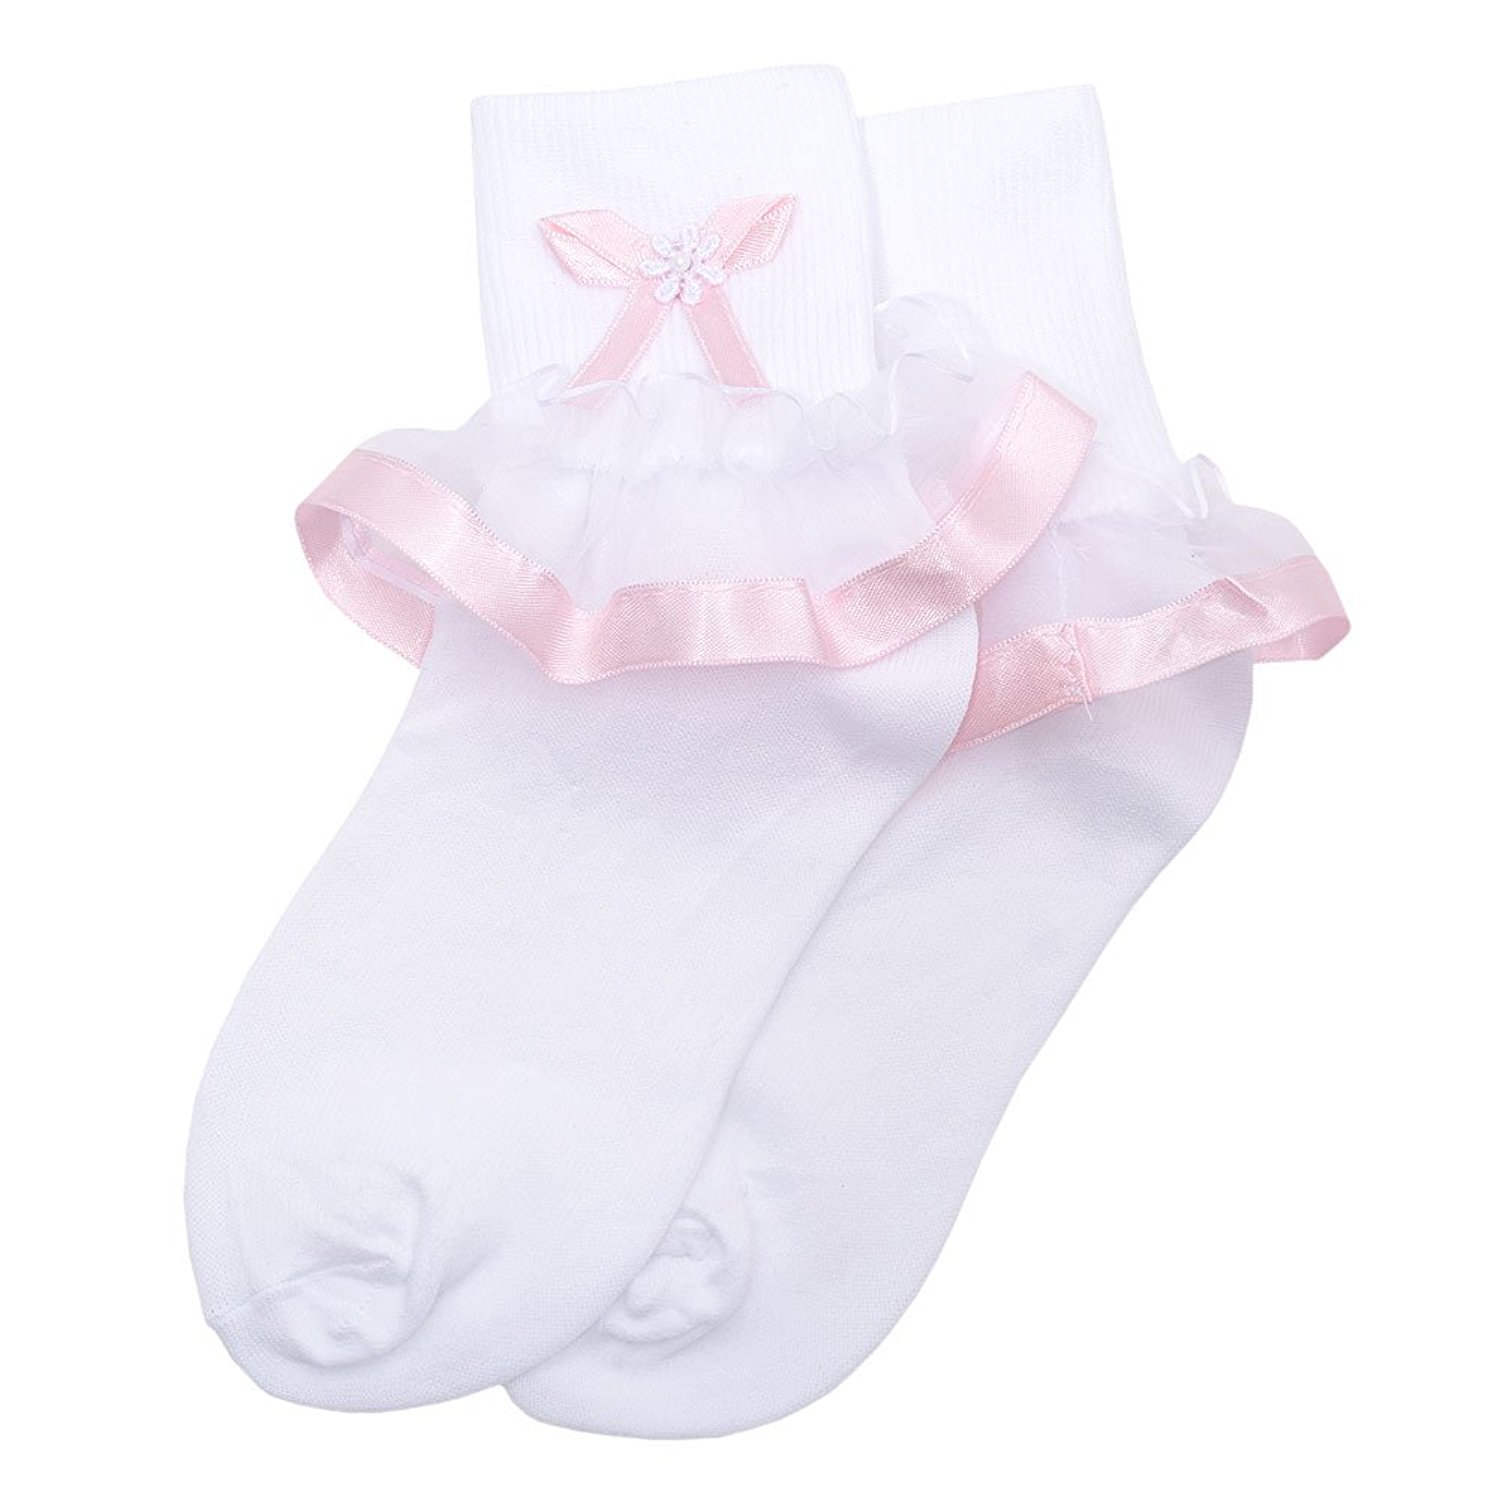 ee27b8bd5b0e66 Get Quotations · Piccolo Little Girls White Pink Bow Broach Lace Trim  Anklet Socks 5-8.5